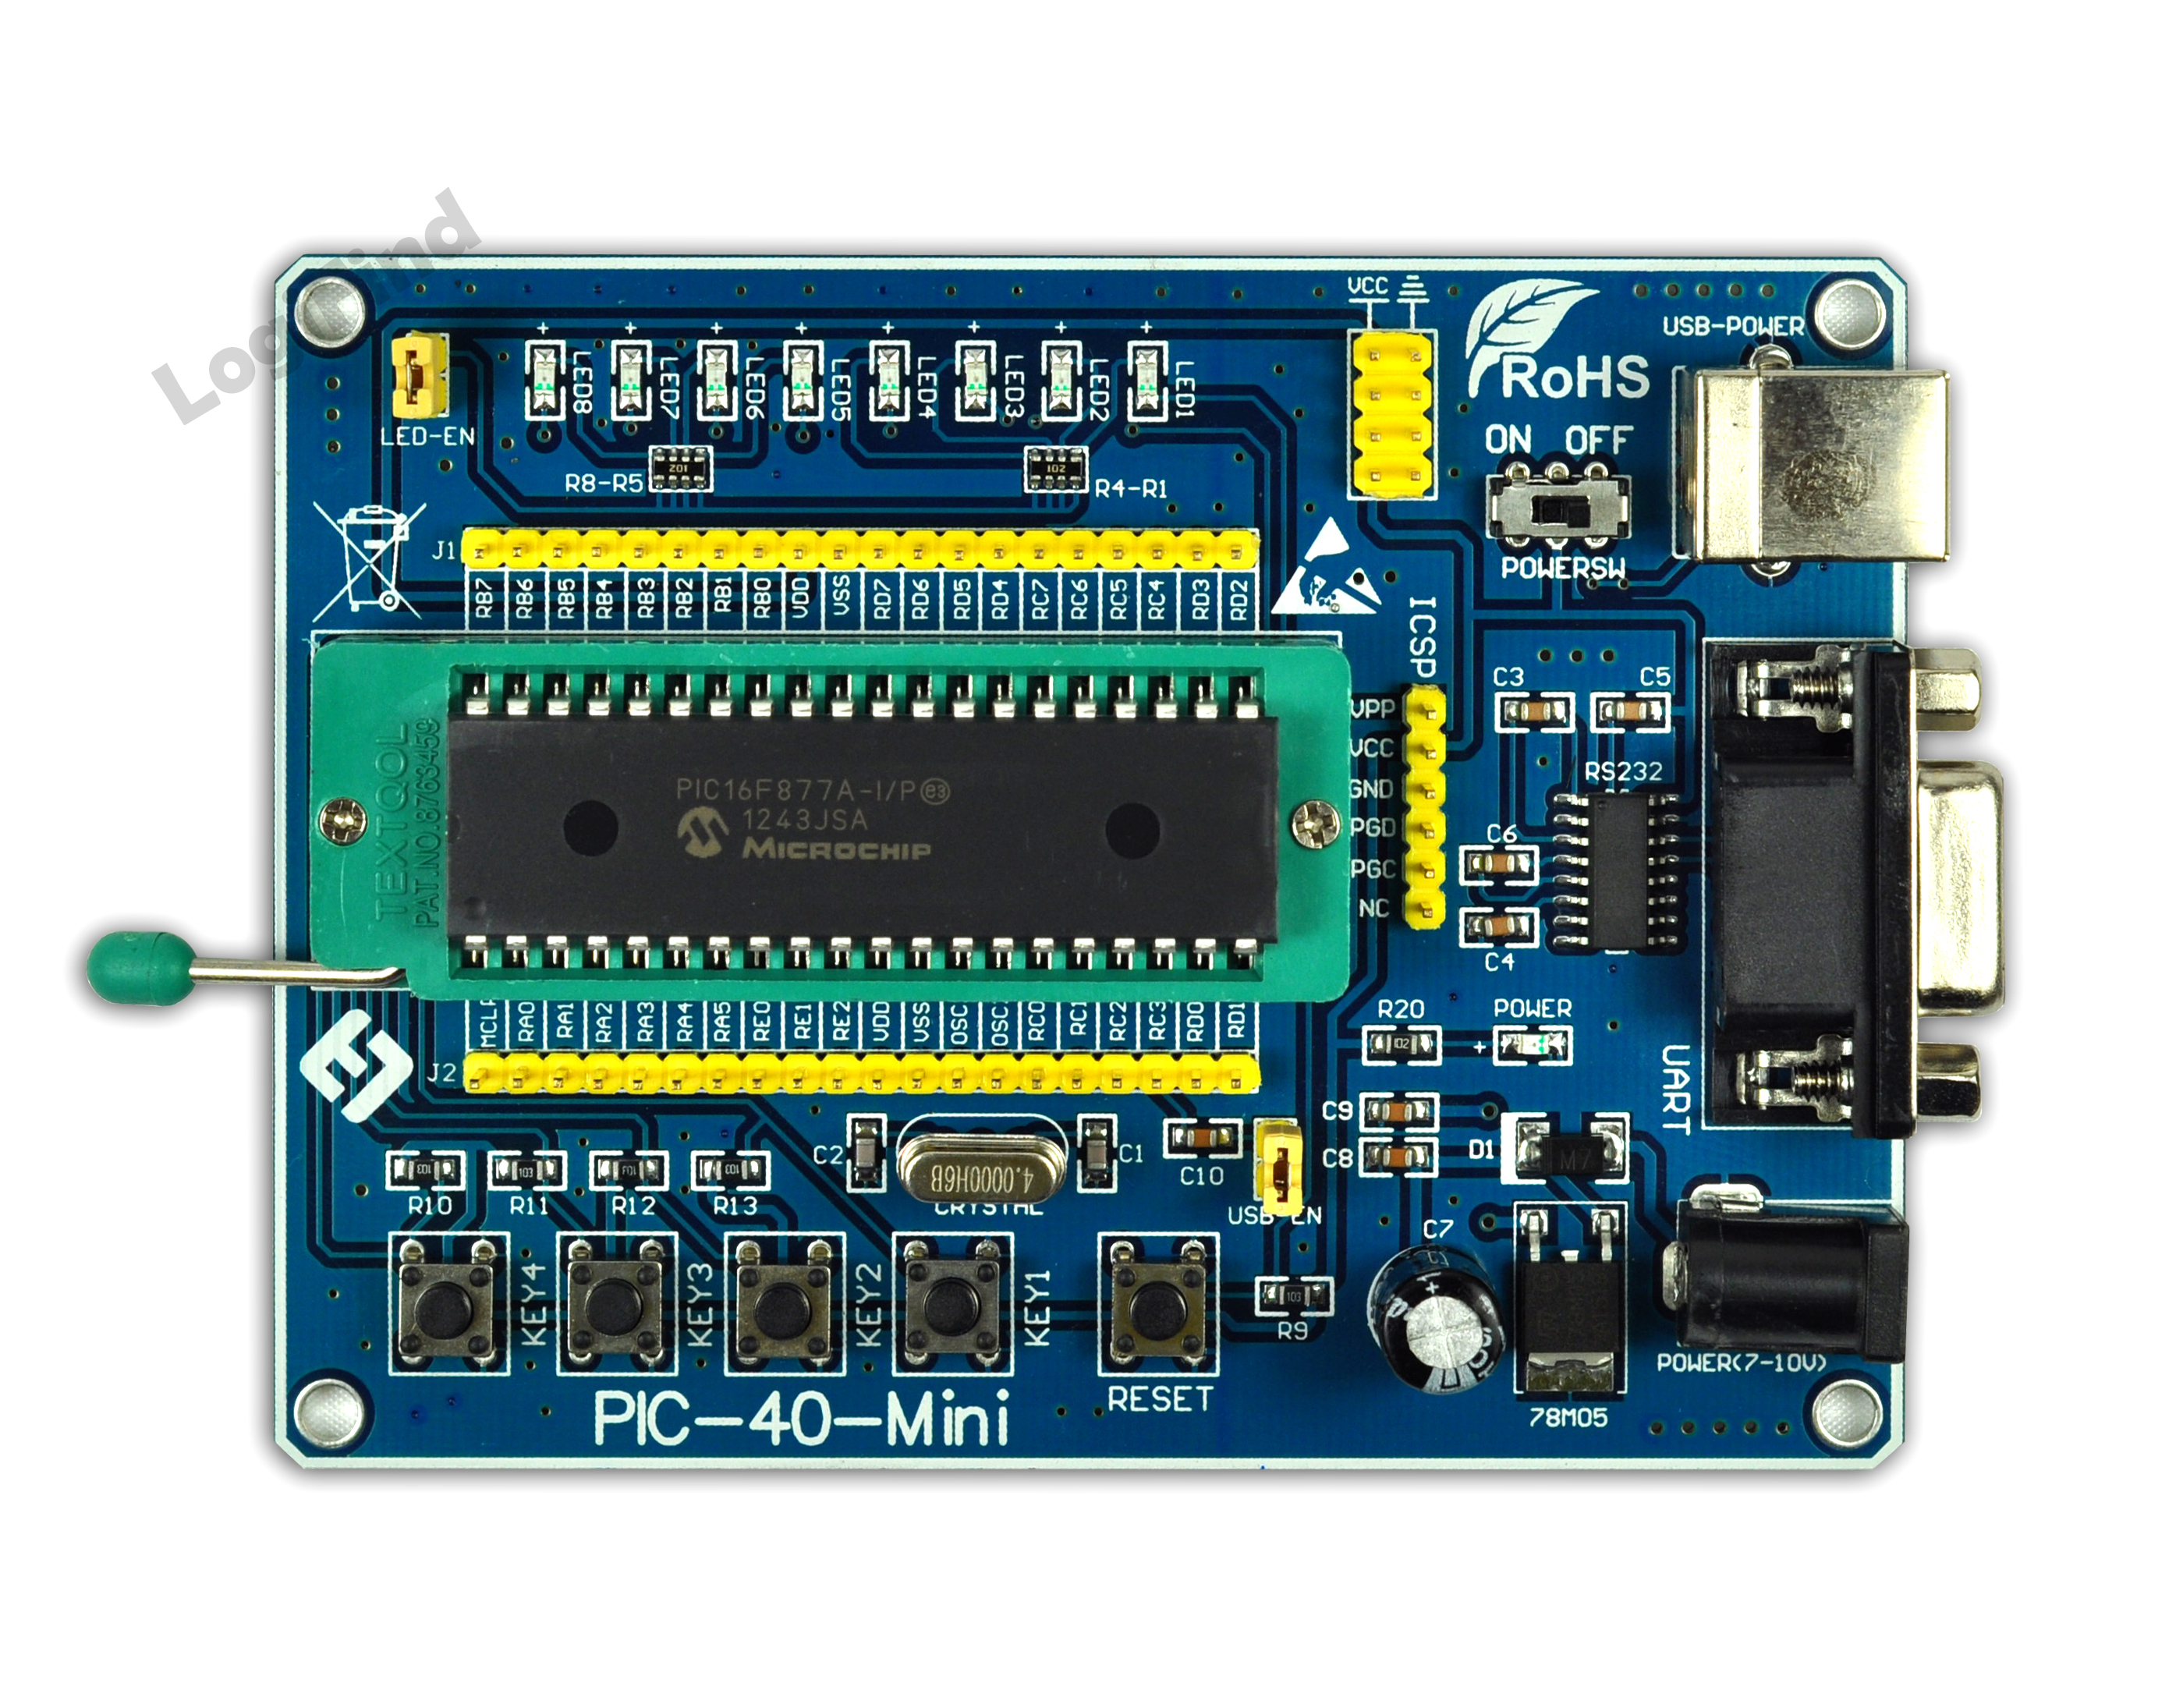 PIC Development Board /PIC Learning Board /PIC-40-MINI with PIC18F4550 Chip USB Development футболка женская roxy russiancrew j tees palace blue